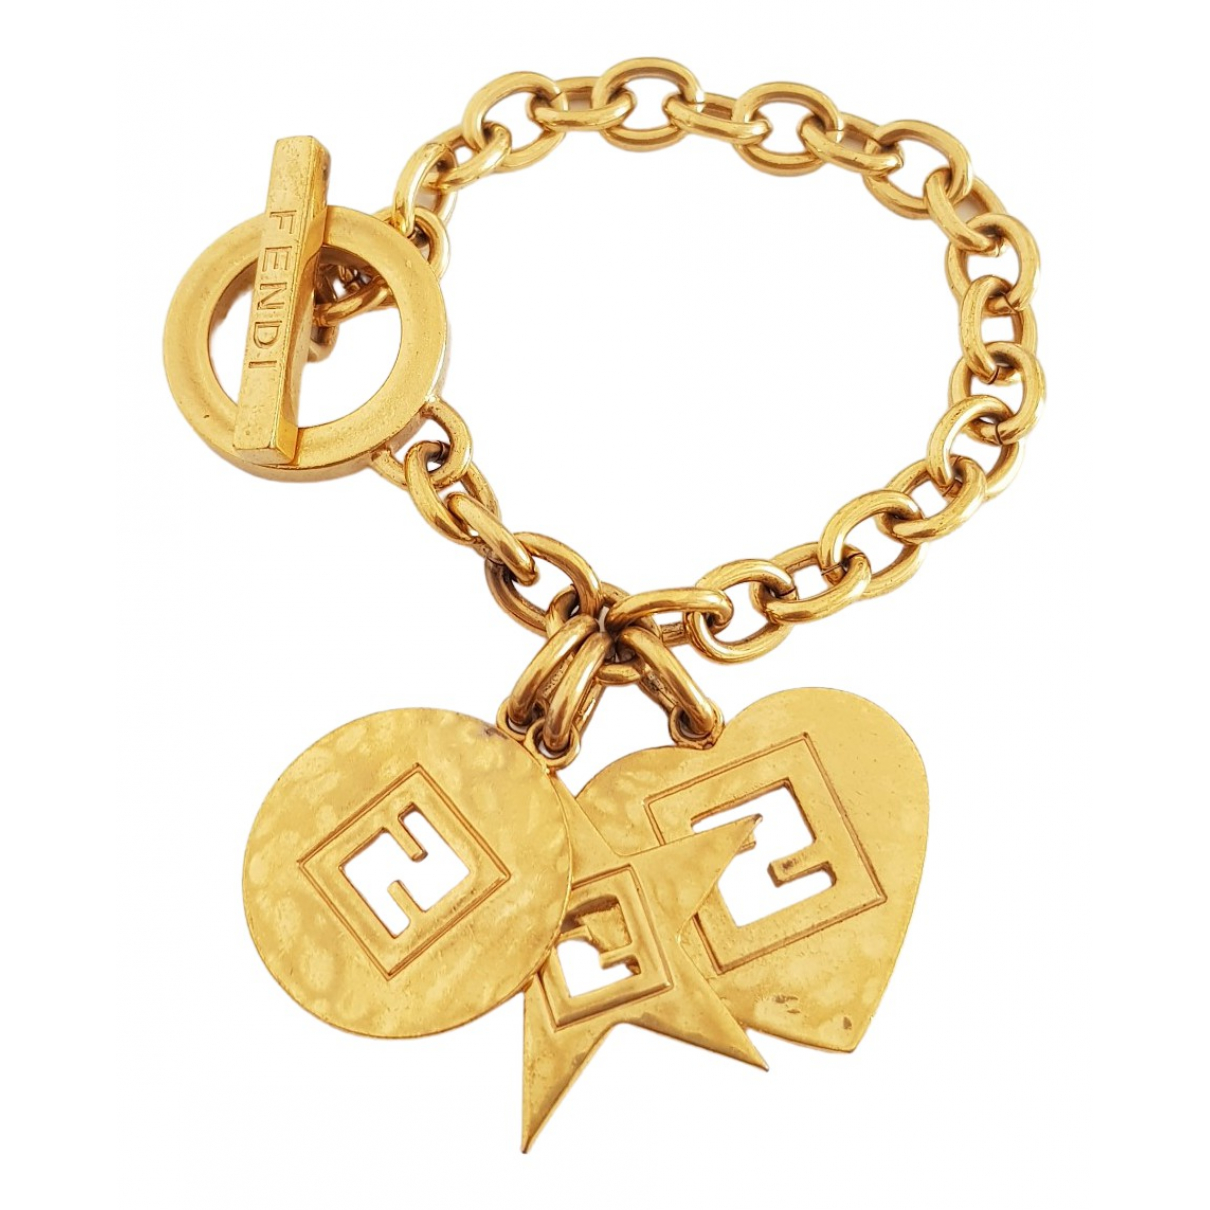 Fendi \N Gold Metal bracelet for Women \N